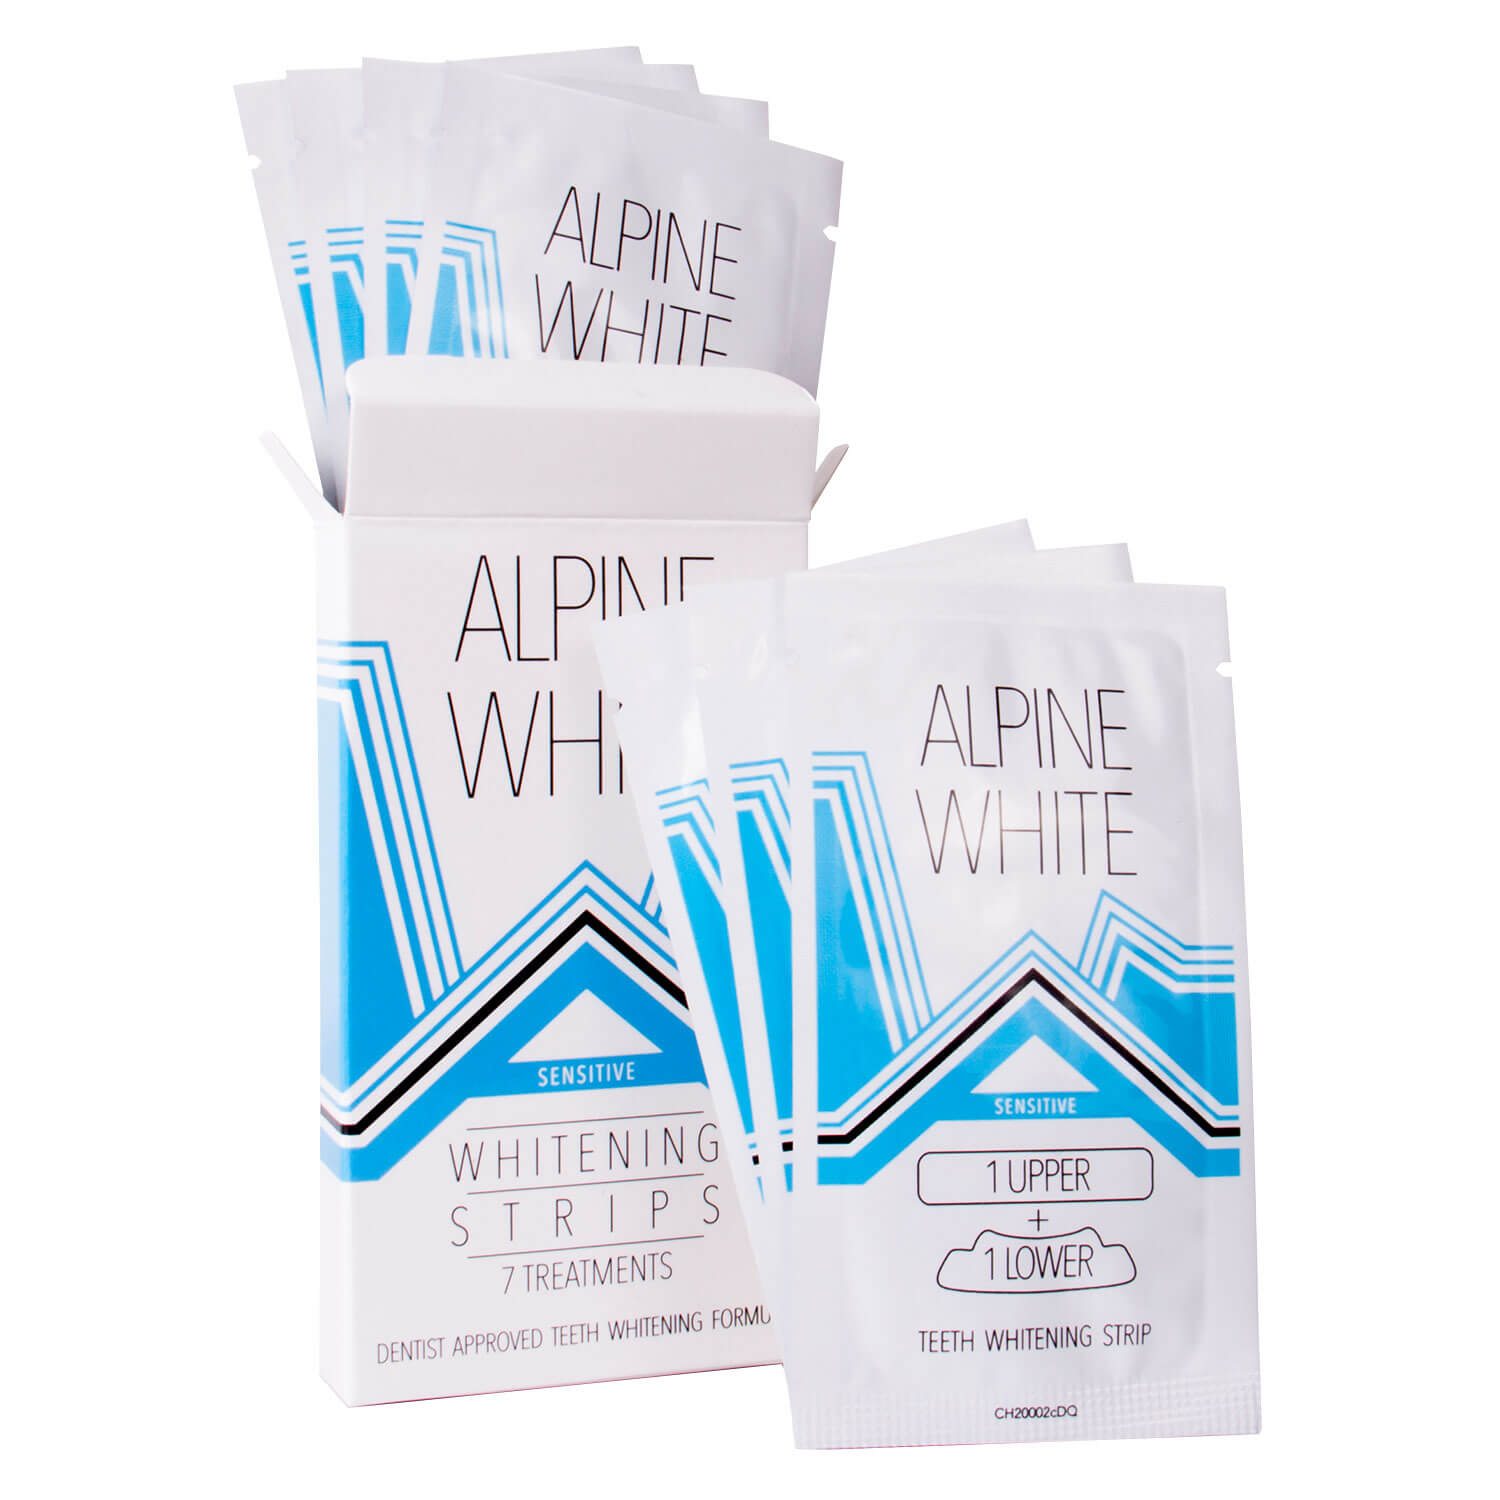 ALPINE WHITE - Whitening Strips Sensitive - 7x